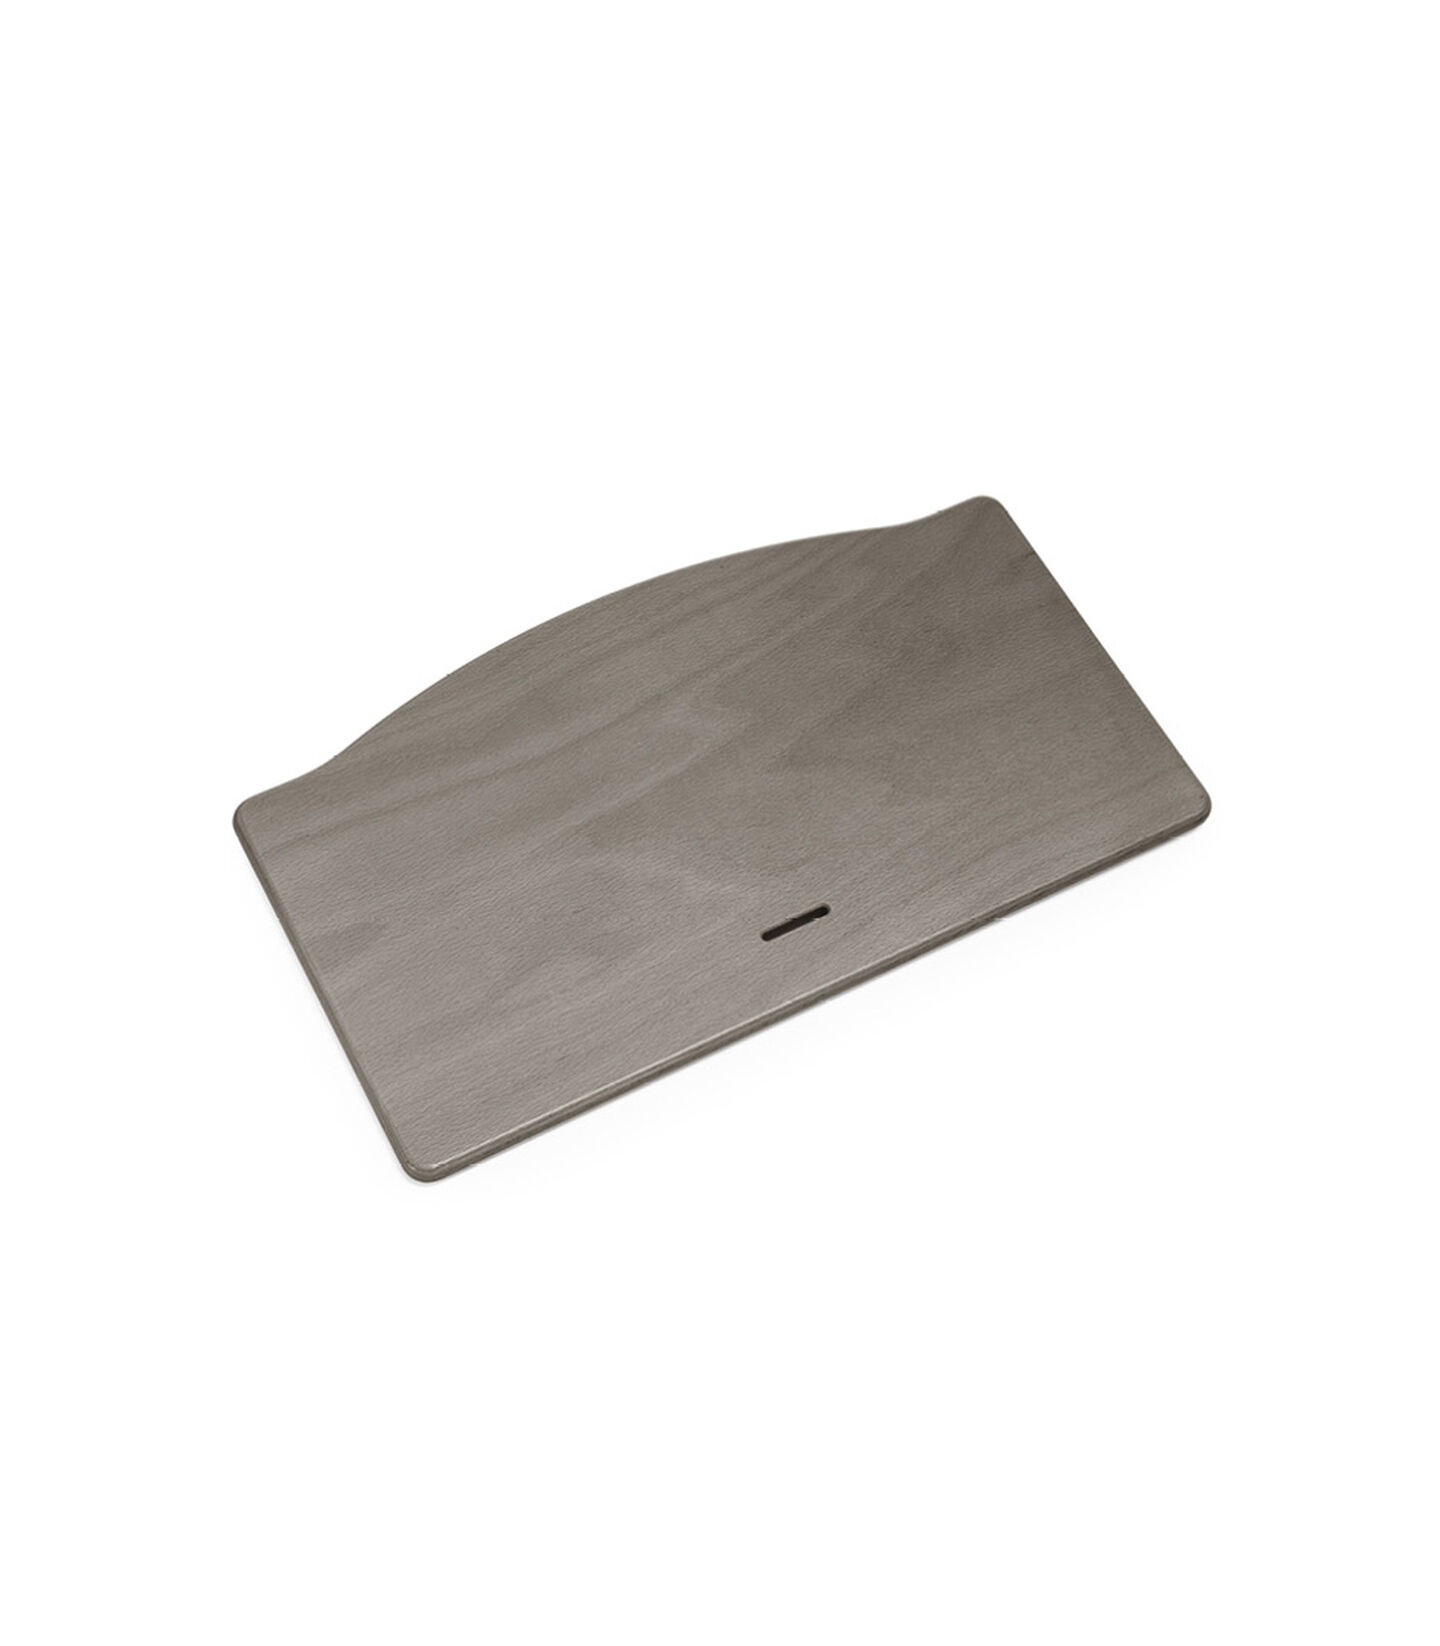 108829 Tripp Trapp Seat plate Hazy Grey (Spare part). view 2